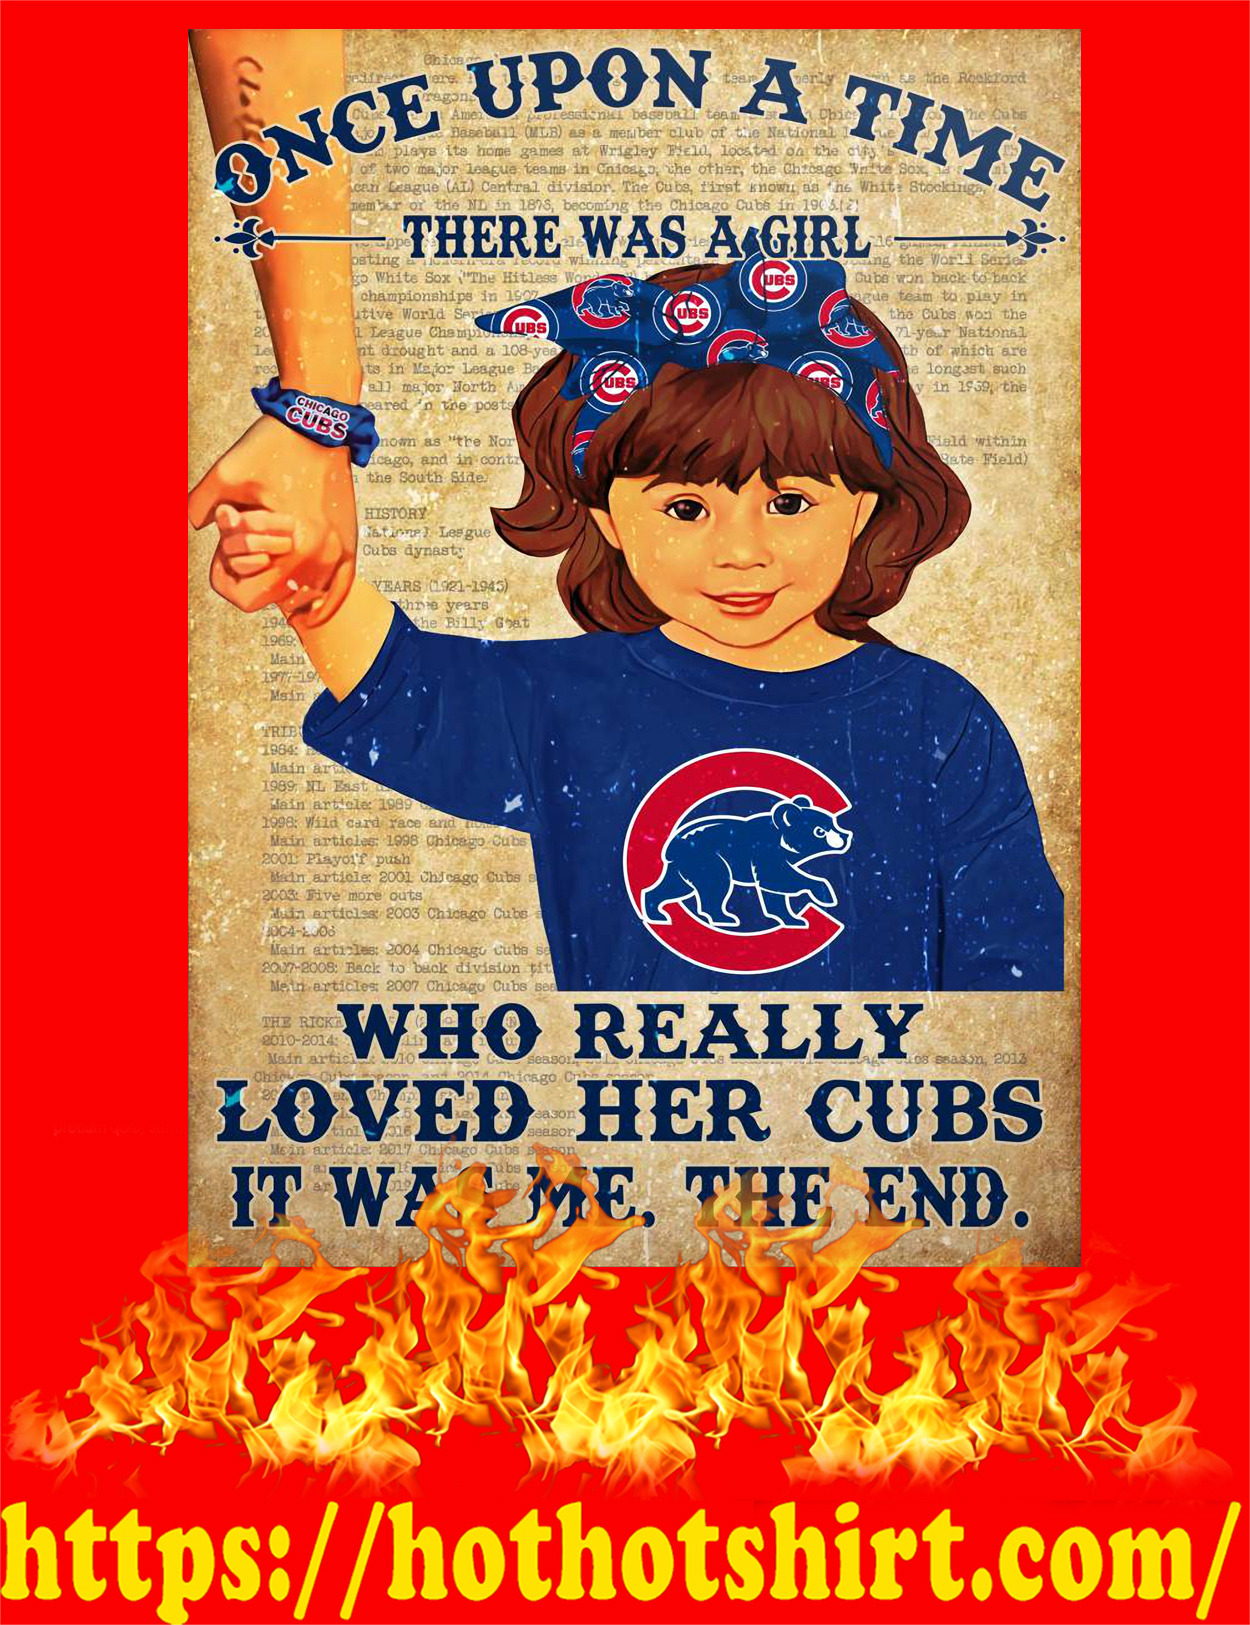 Once upon a time there was a girl who really loved her cubs poster - style 3